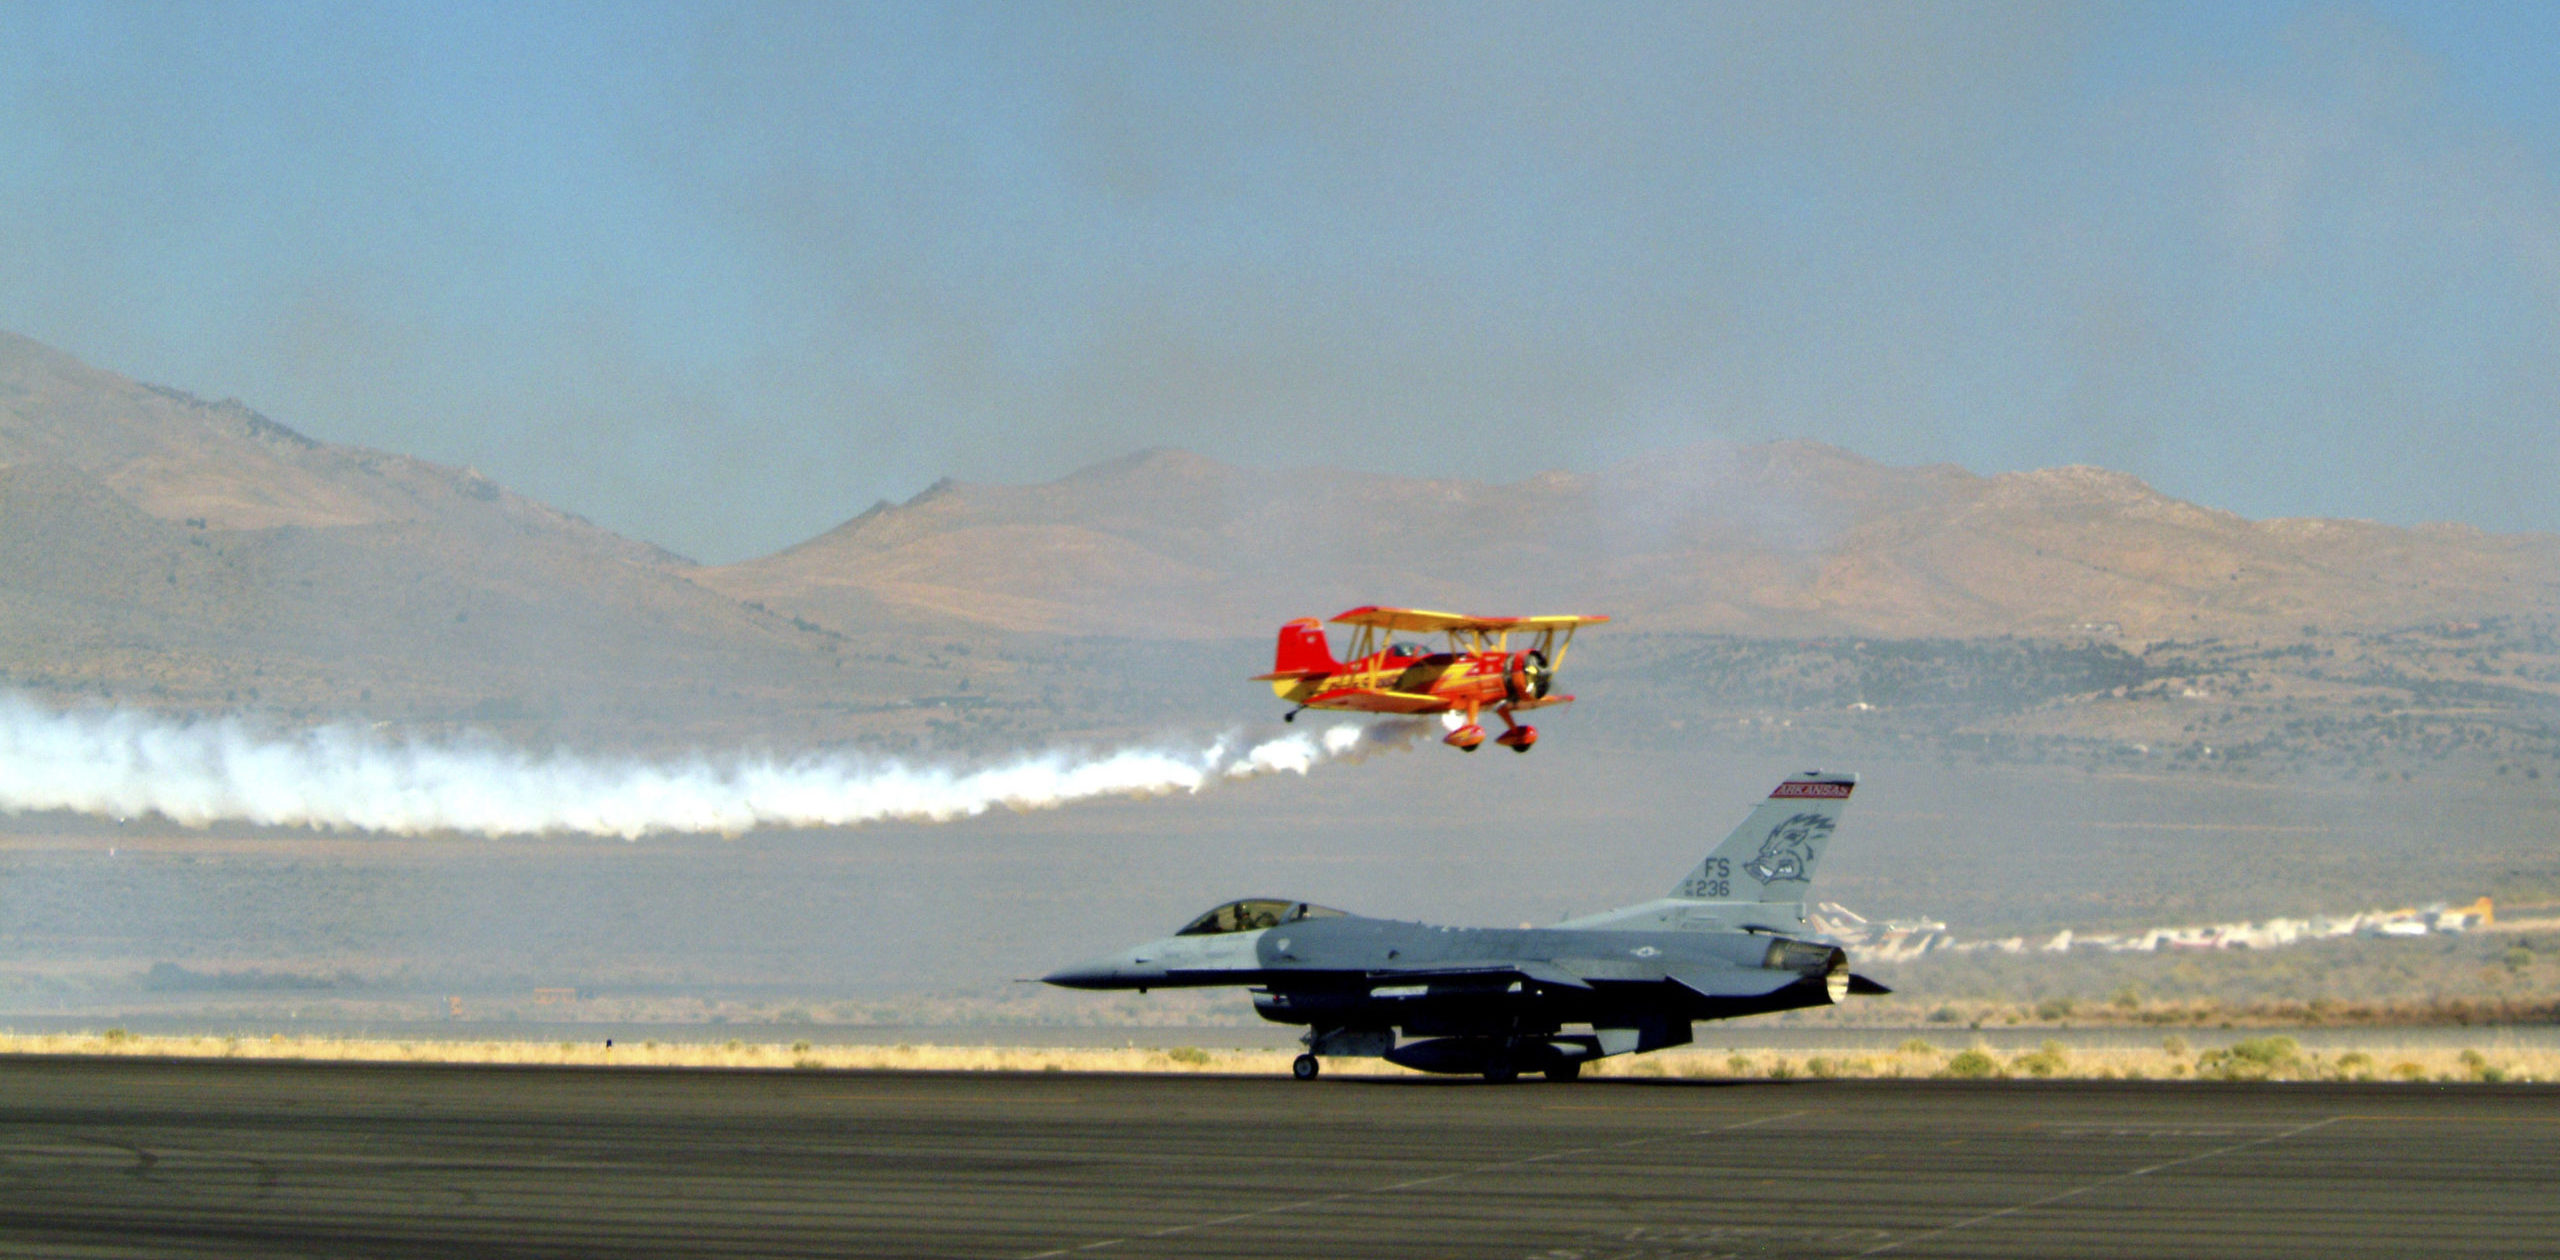 One Of The Best Air Shows In The Country Is Nevada's National Championship Air Races